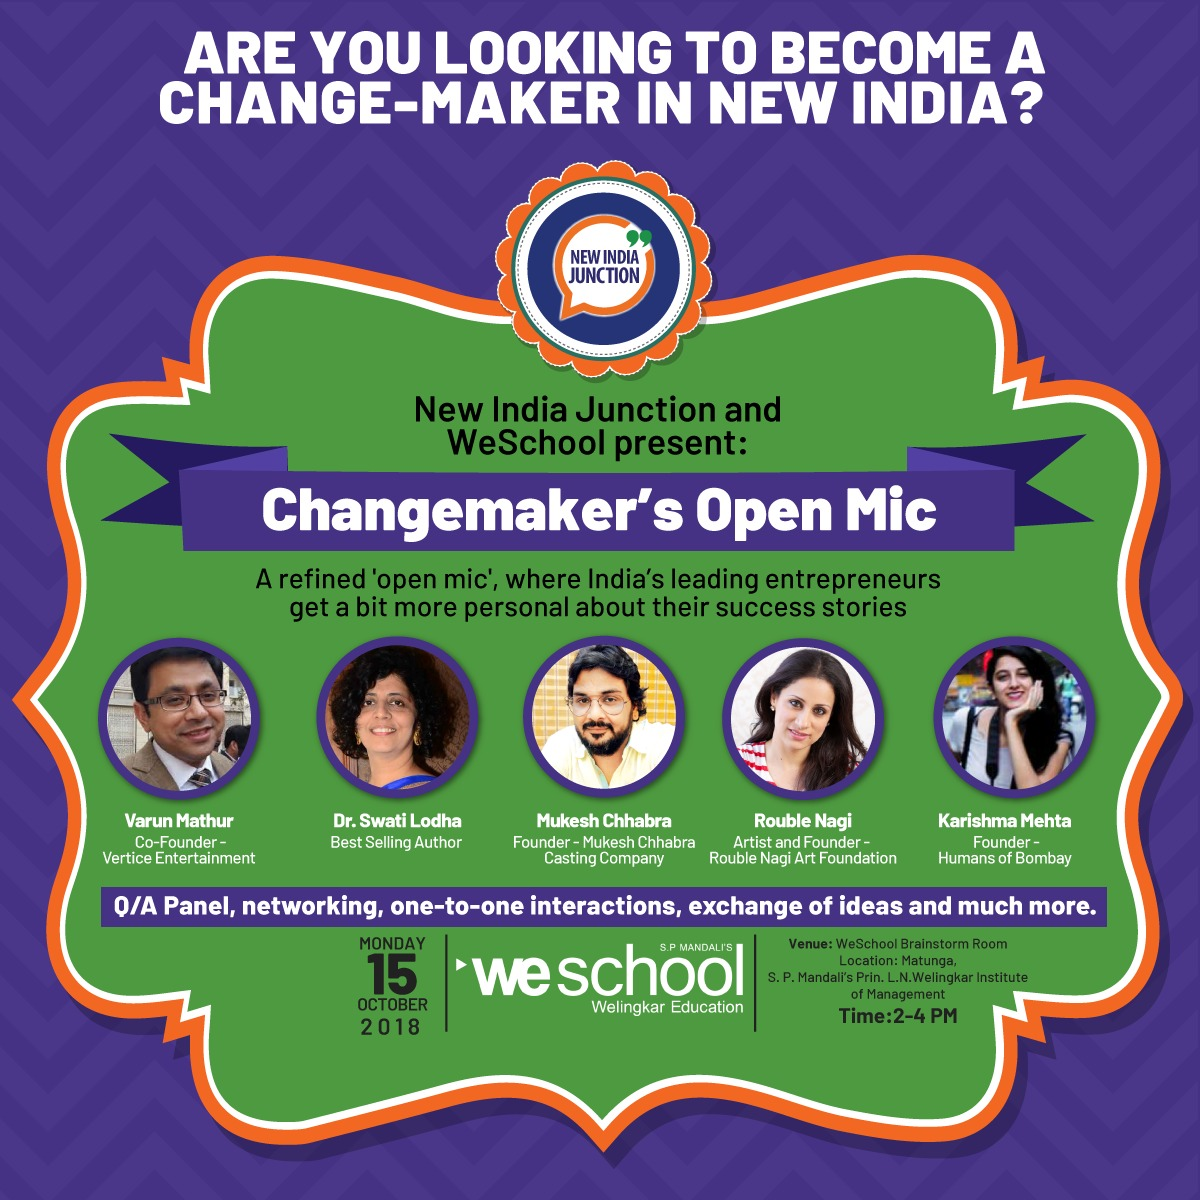 WeSchool welcomes the changemakers